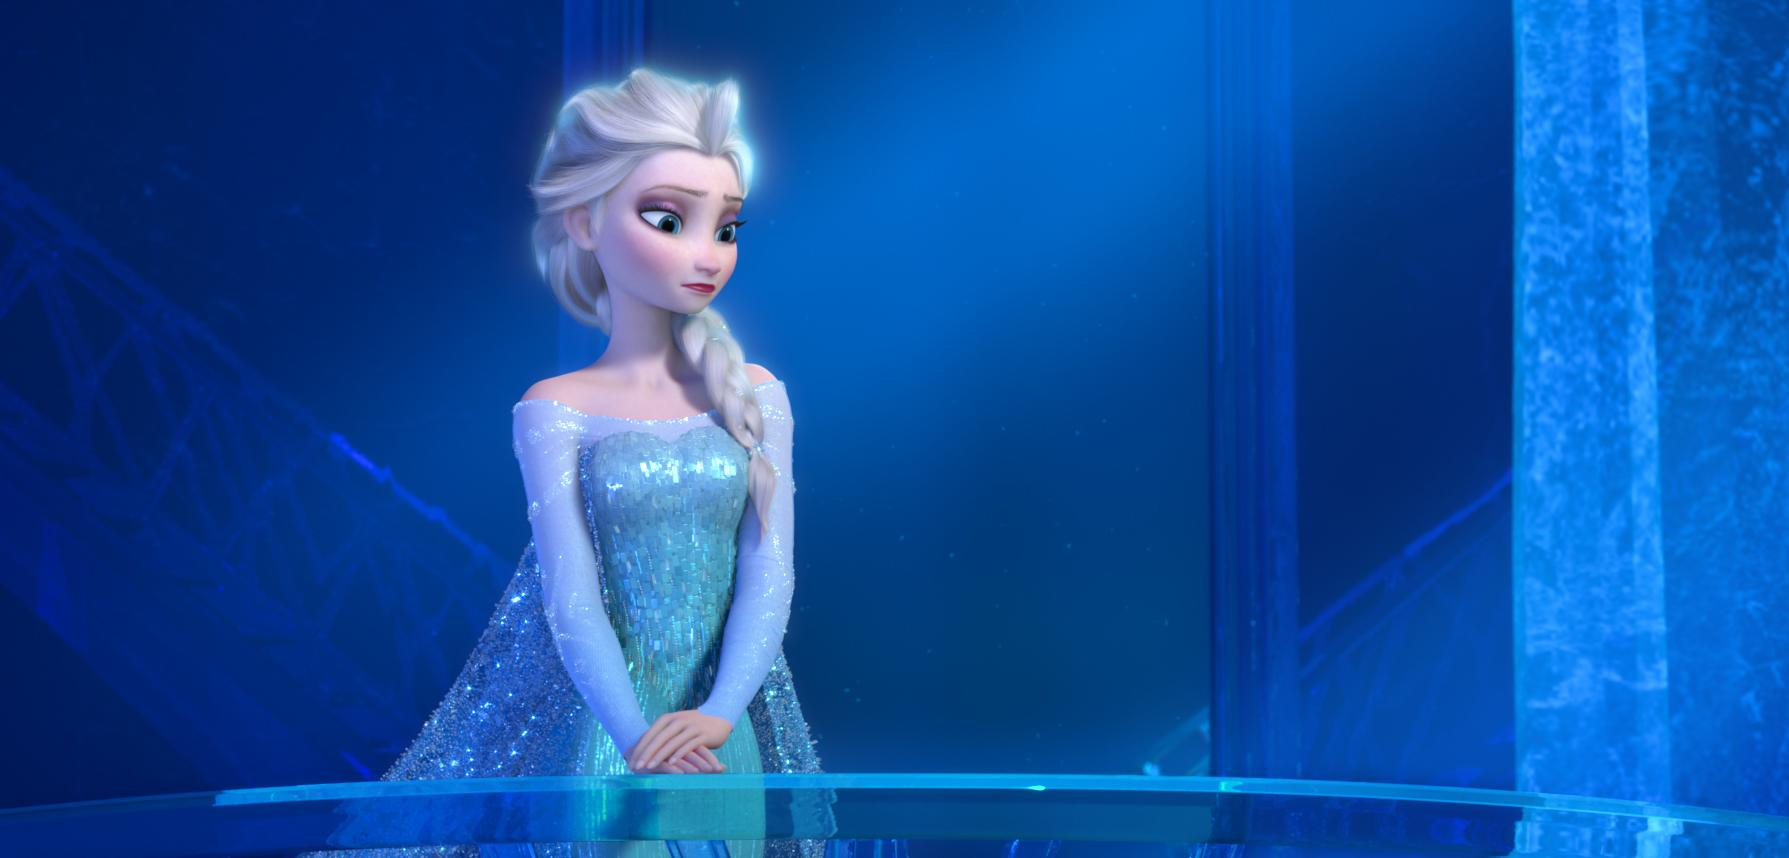 'Frozen' is named top entertainer of the year by AP